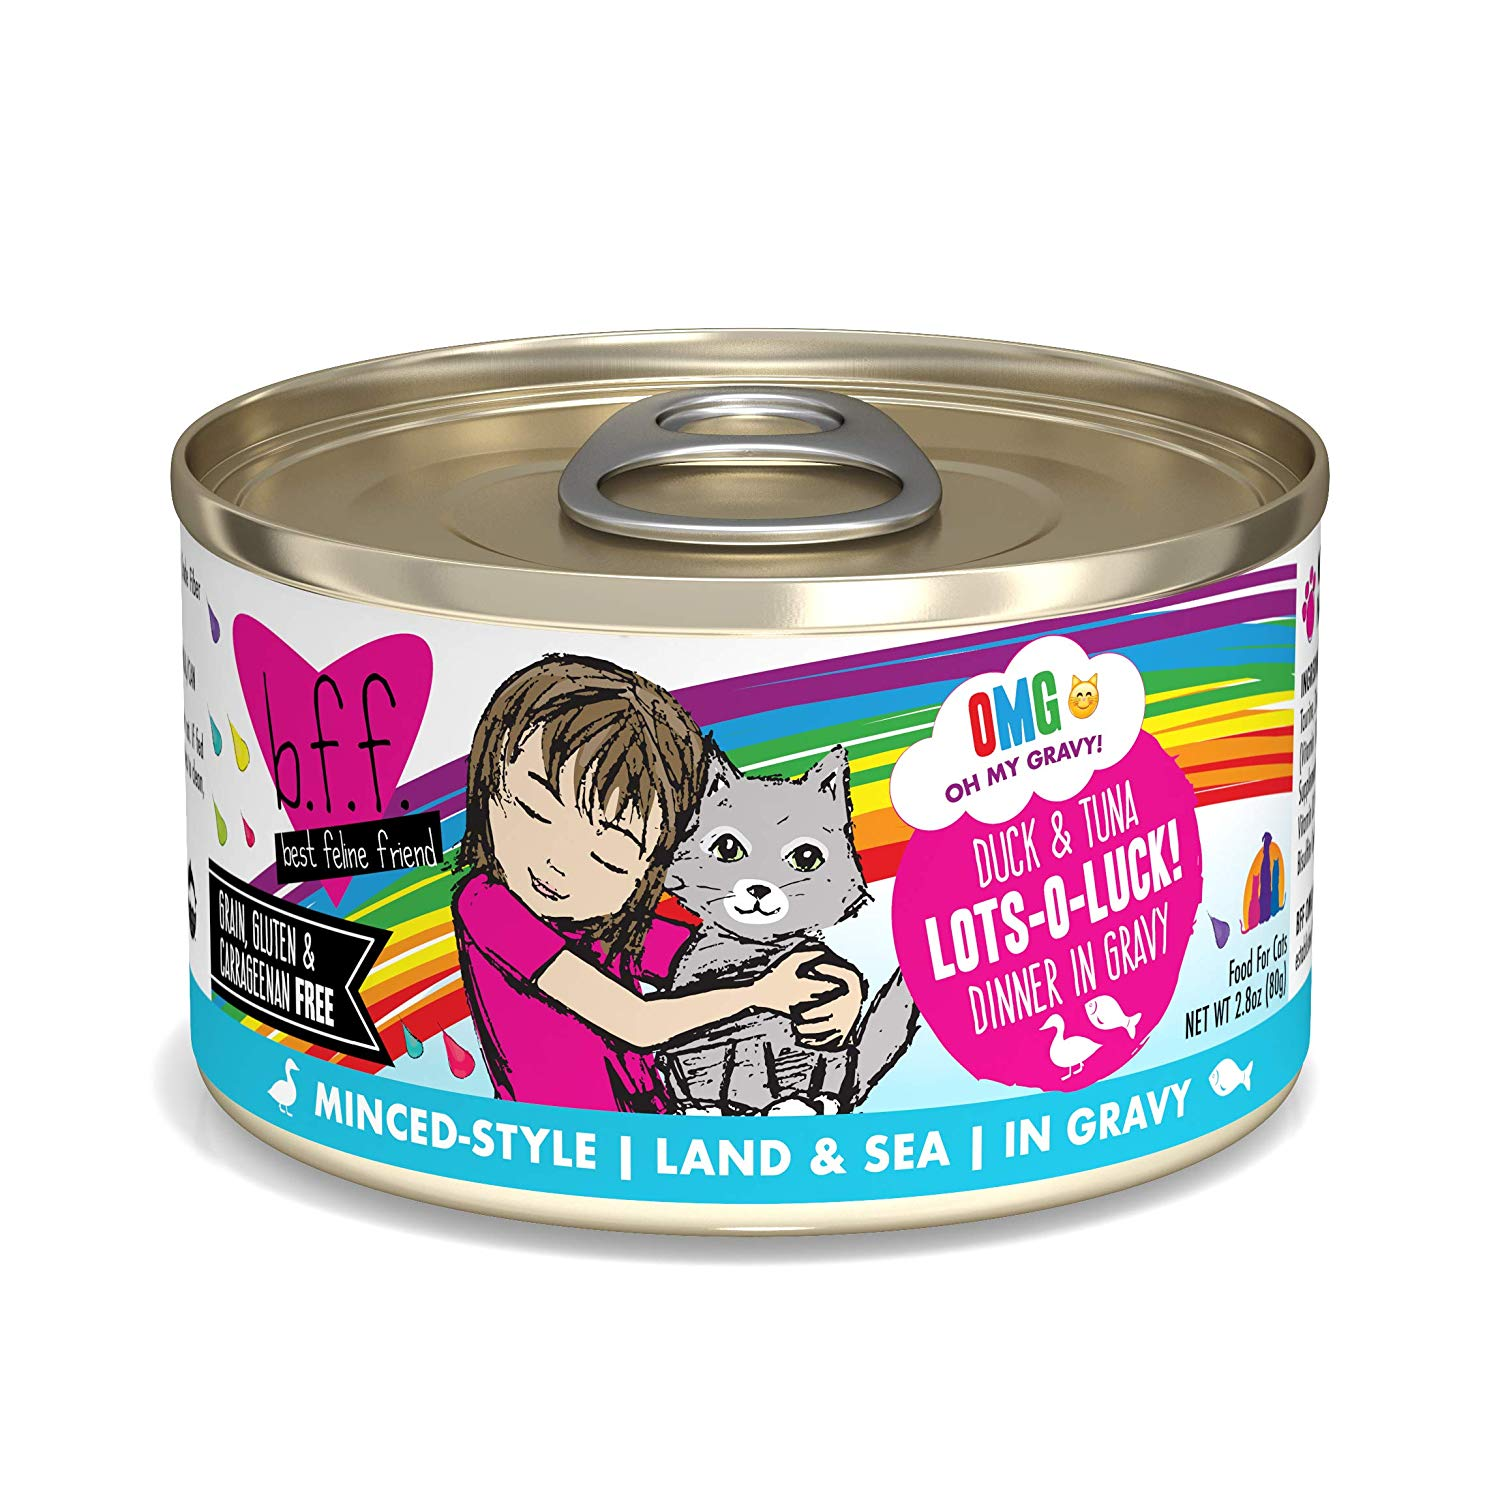 BFF Oh My Gravy! Lots-O-Luck! Duck & Tuna Dinner in Gravy Grain-Free Wet Cat Food, 2.8-oz